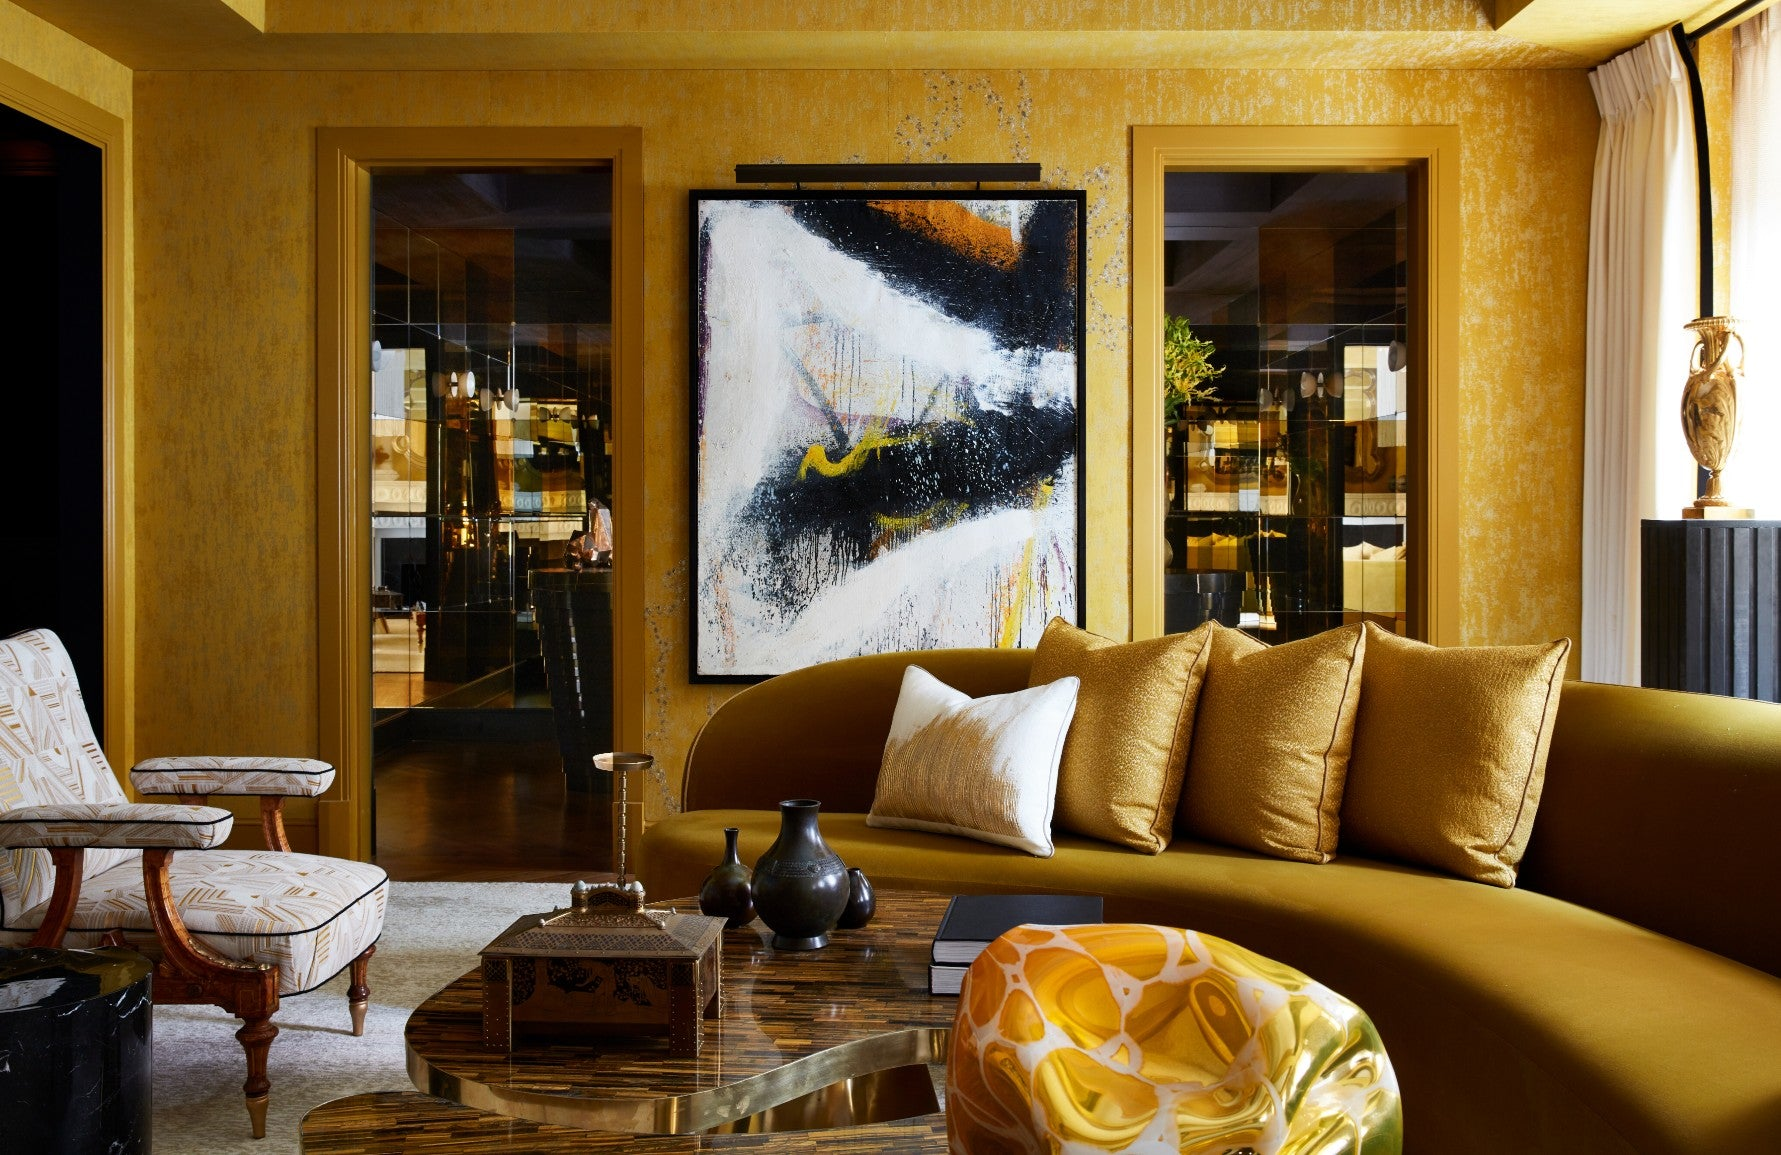 Best Yellow Living Room Ideas | Gold Living Room Colour Scheme | Decorating with Yellow | LuxDeco.com Style Guide